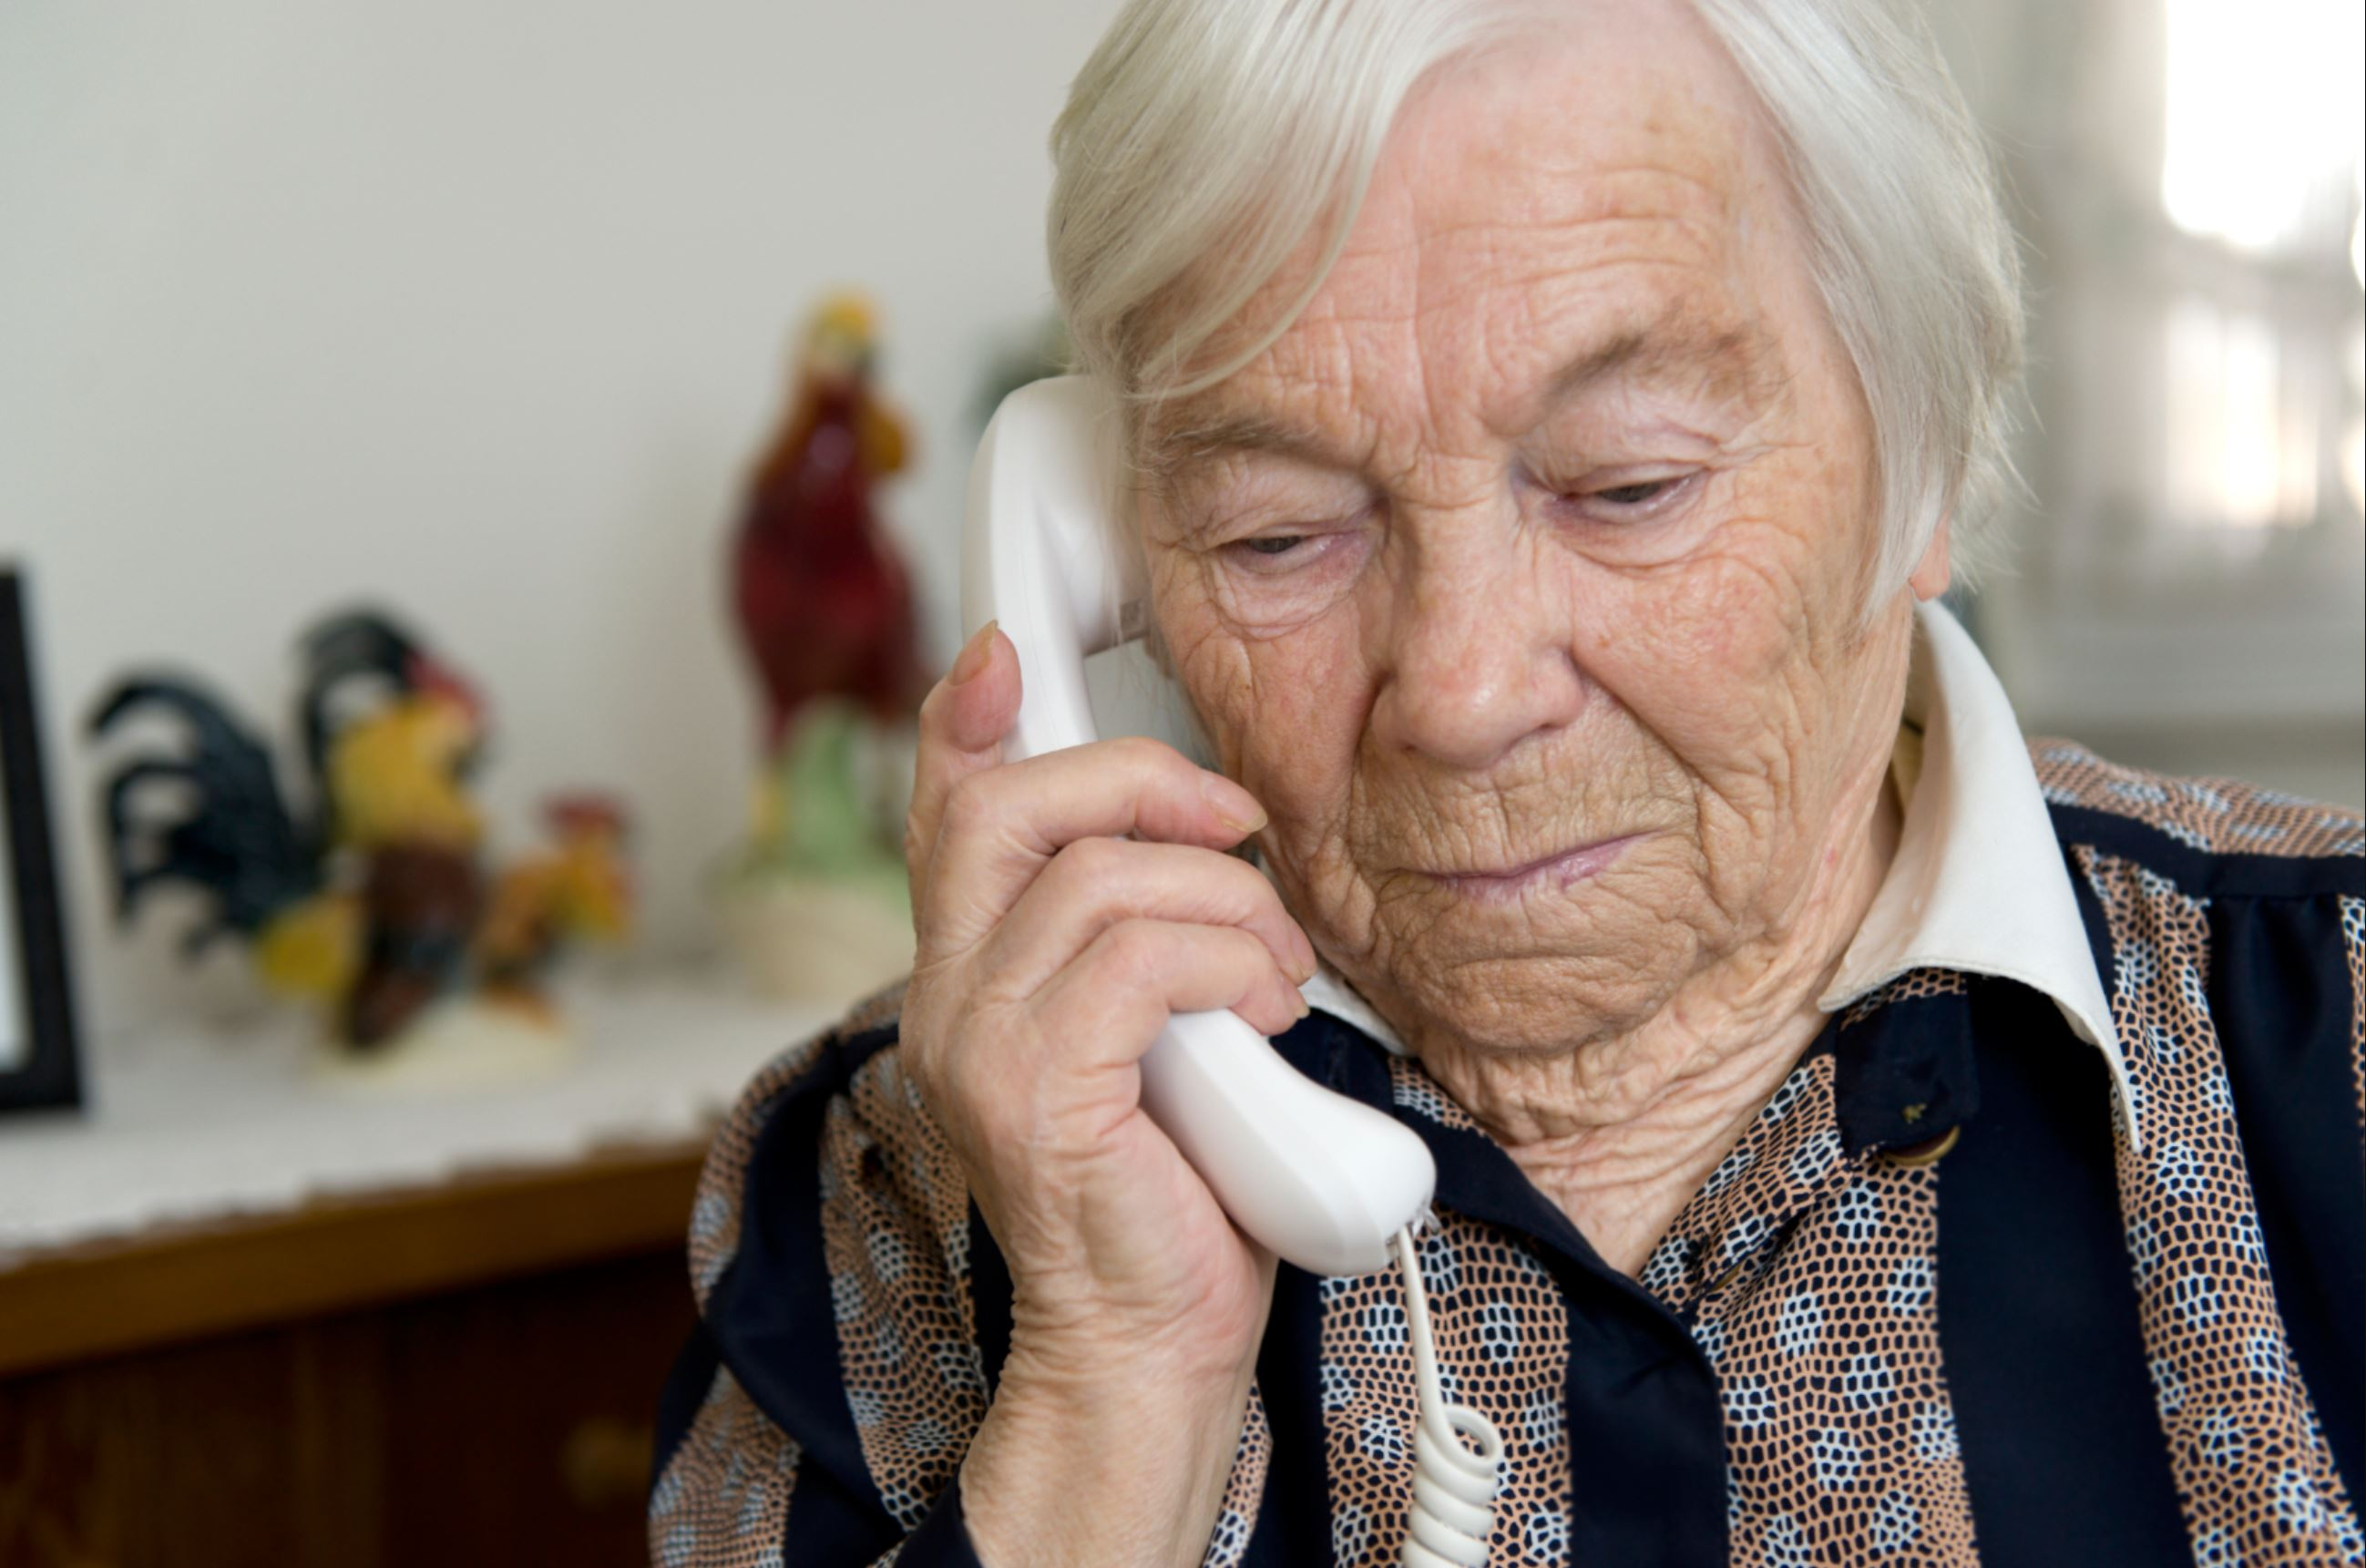 SRESAgent.Com  - Seniors Being Defrauded - What to look out for - January 2020 01 28 Hoey Team eXp Realty